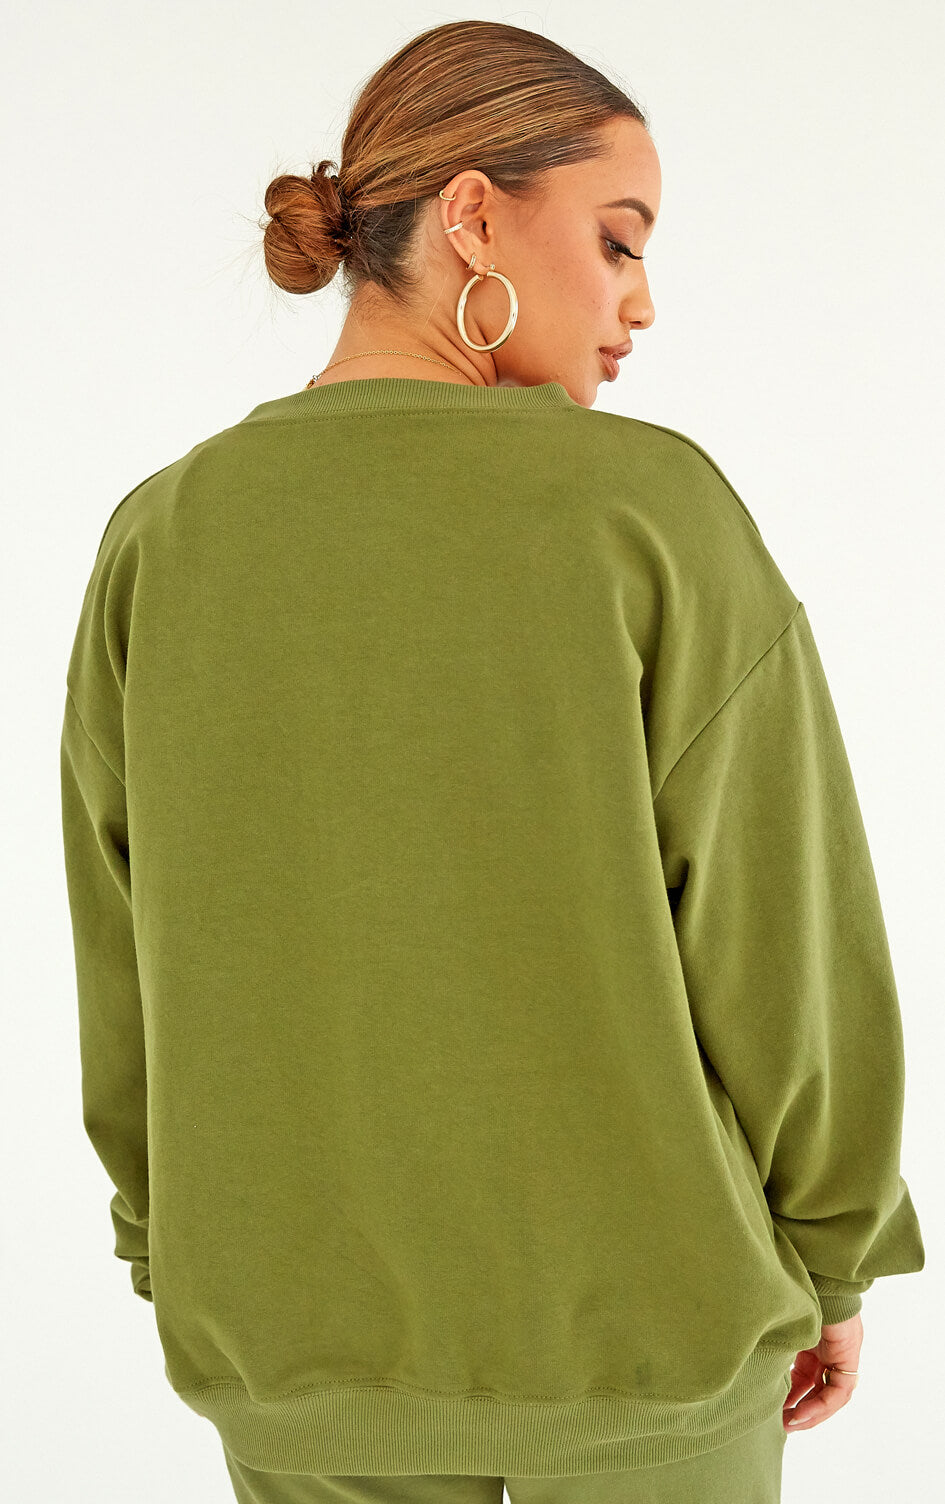 shop-dana-scott-fall-collection-green-olive-agave-fleece-crewneck-sweatshirt-jogger-sweatpants-matching-set